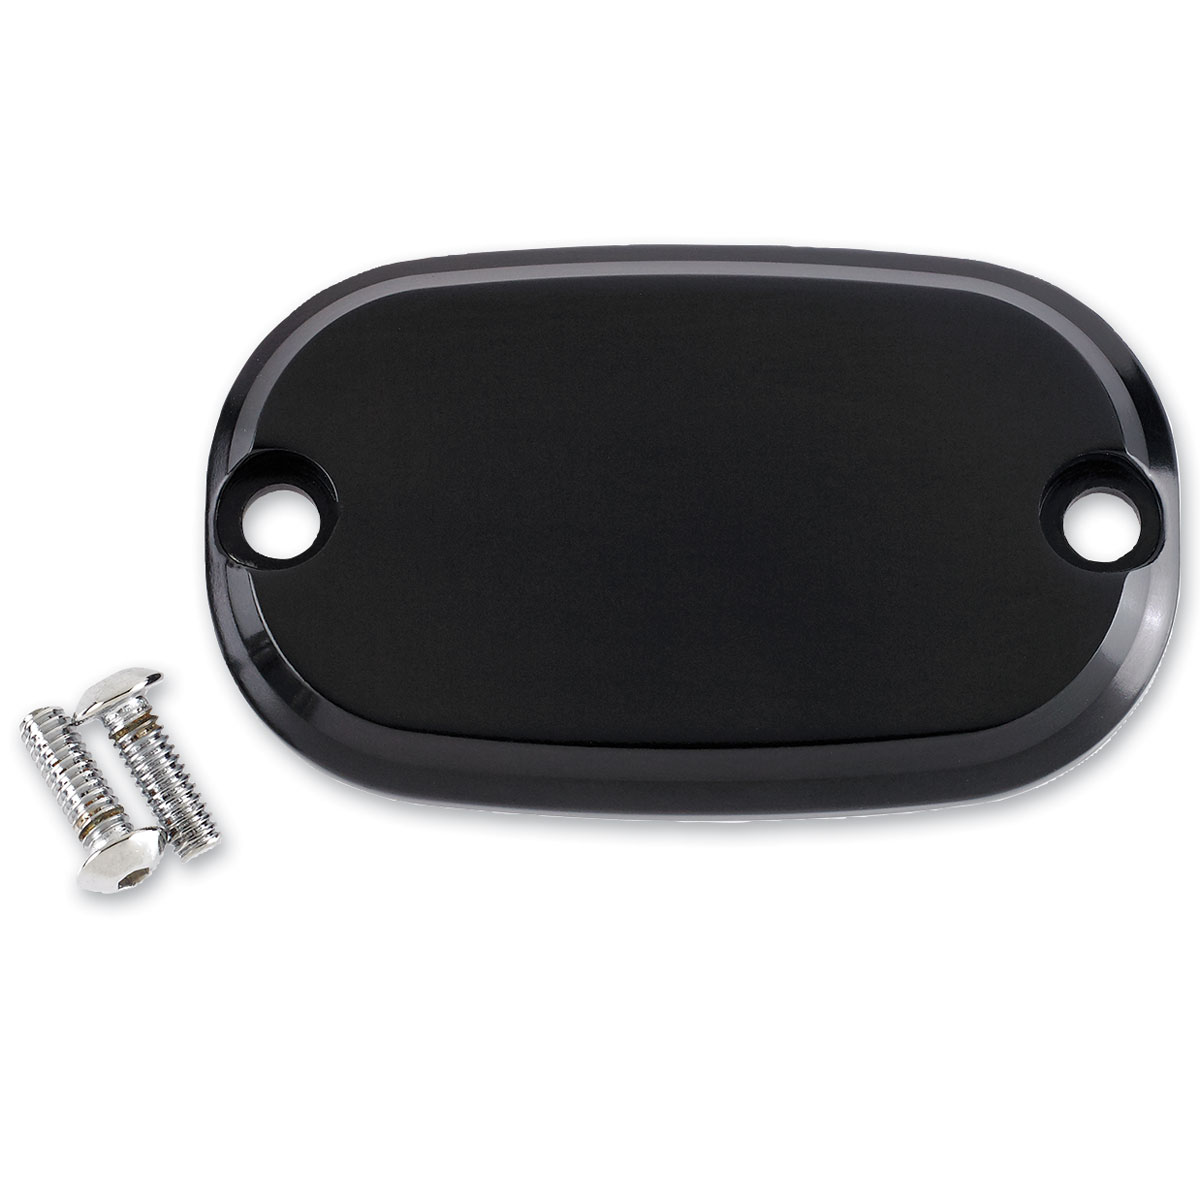 Joker Machine Black Smooth Rear Master Cylinder Cover